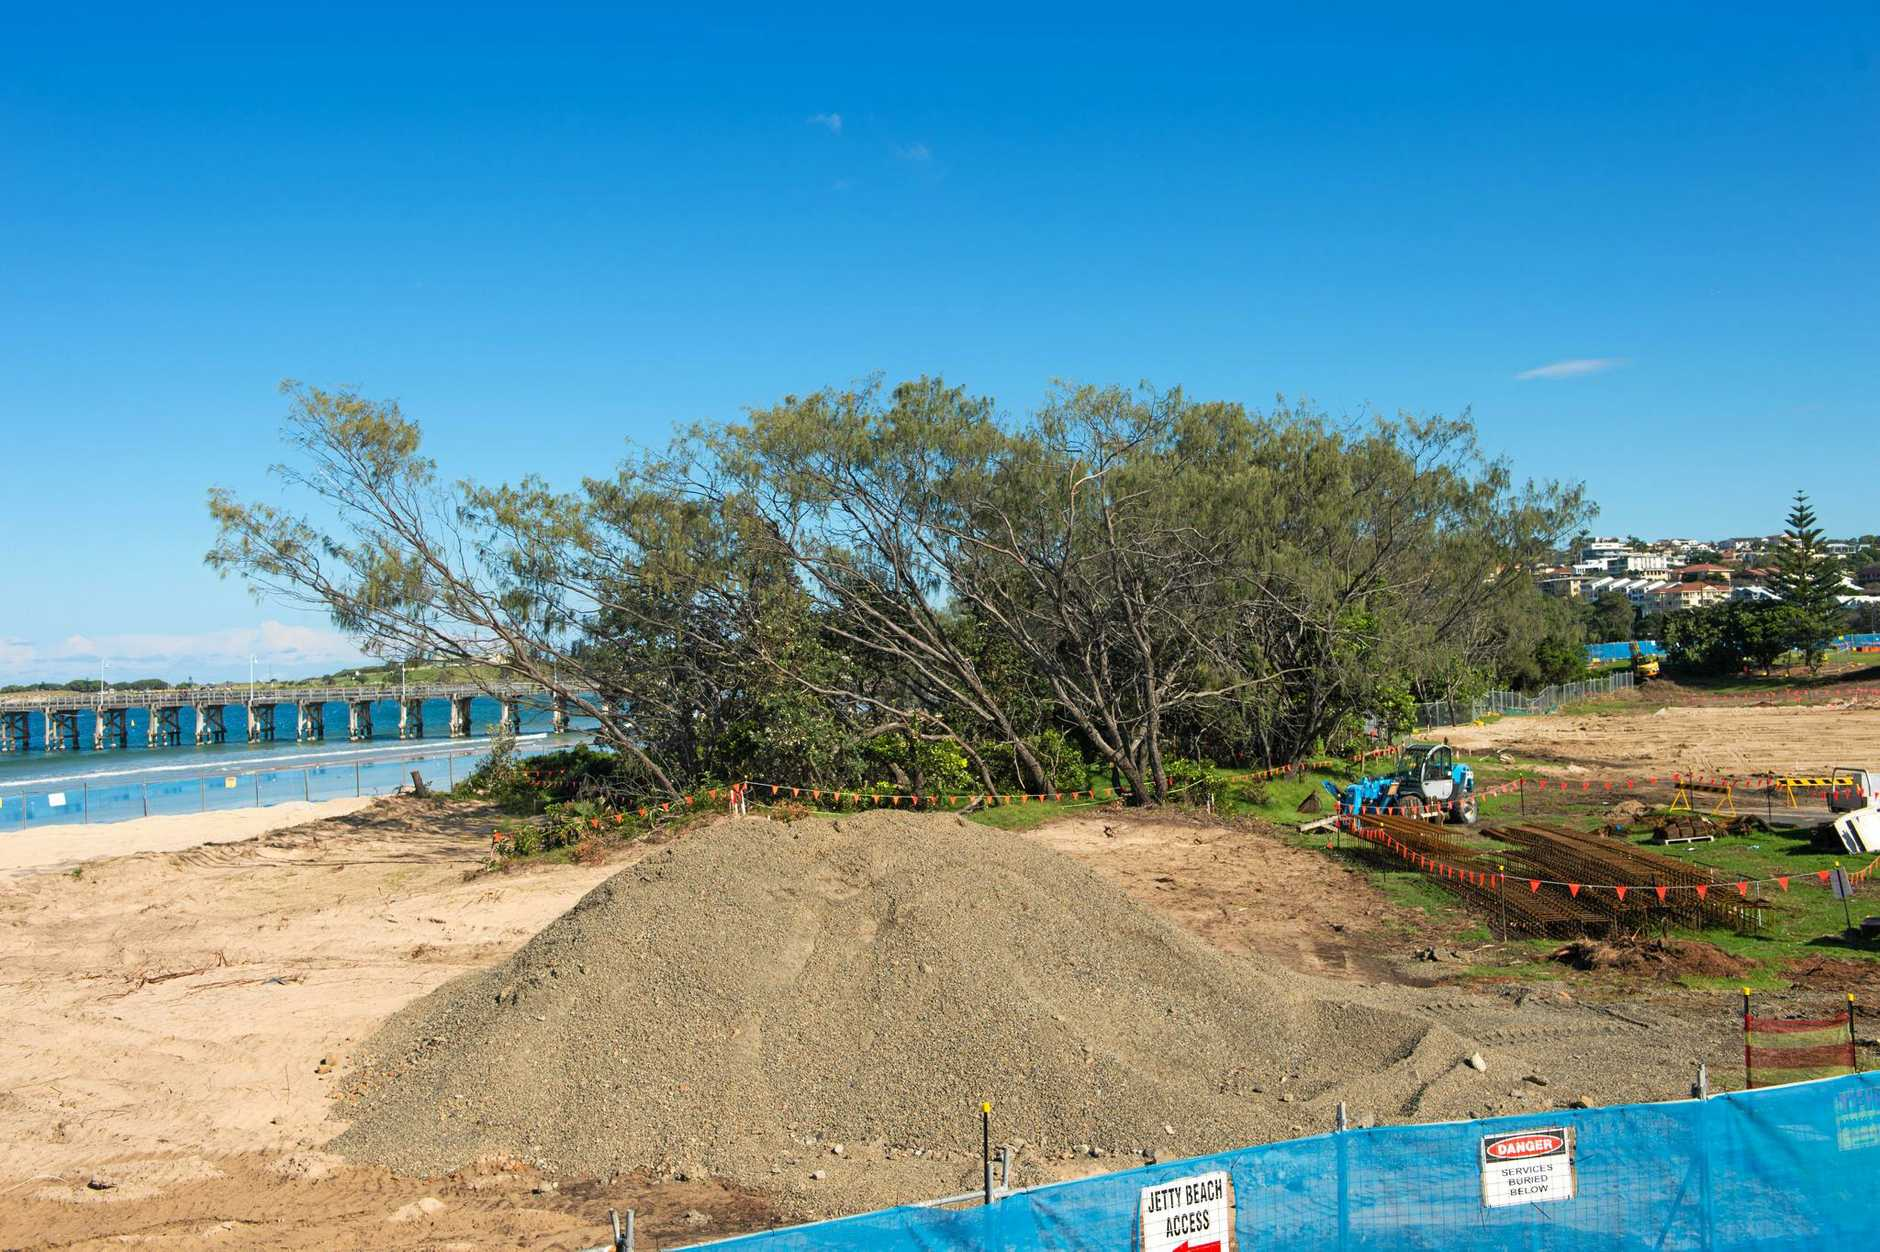 Business leaders have called on Coffs Harbour City Council to consider thinning or felling trees on Jetty Beach before building a new boardwalk which seemingly will miss out on harbour views due to the dunal vegetation.